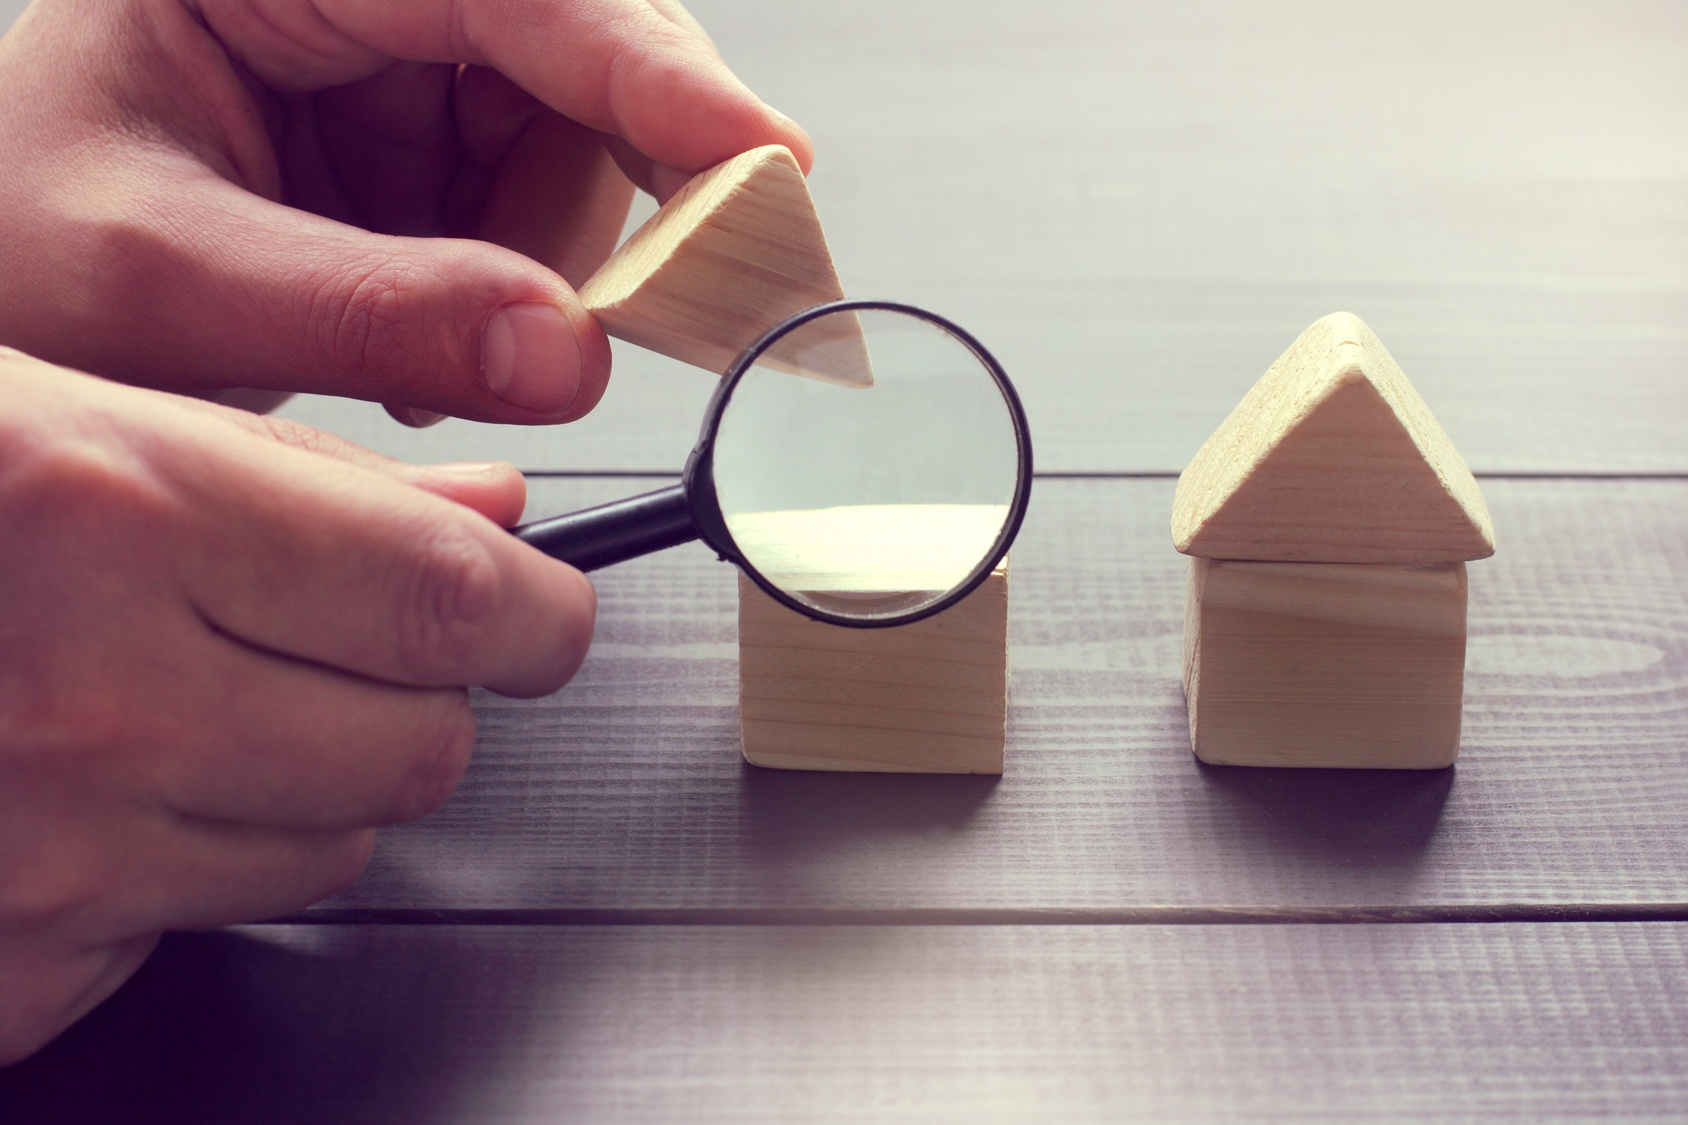 Magnifying wooden toy houses